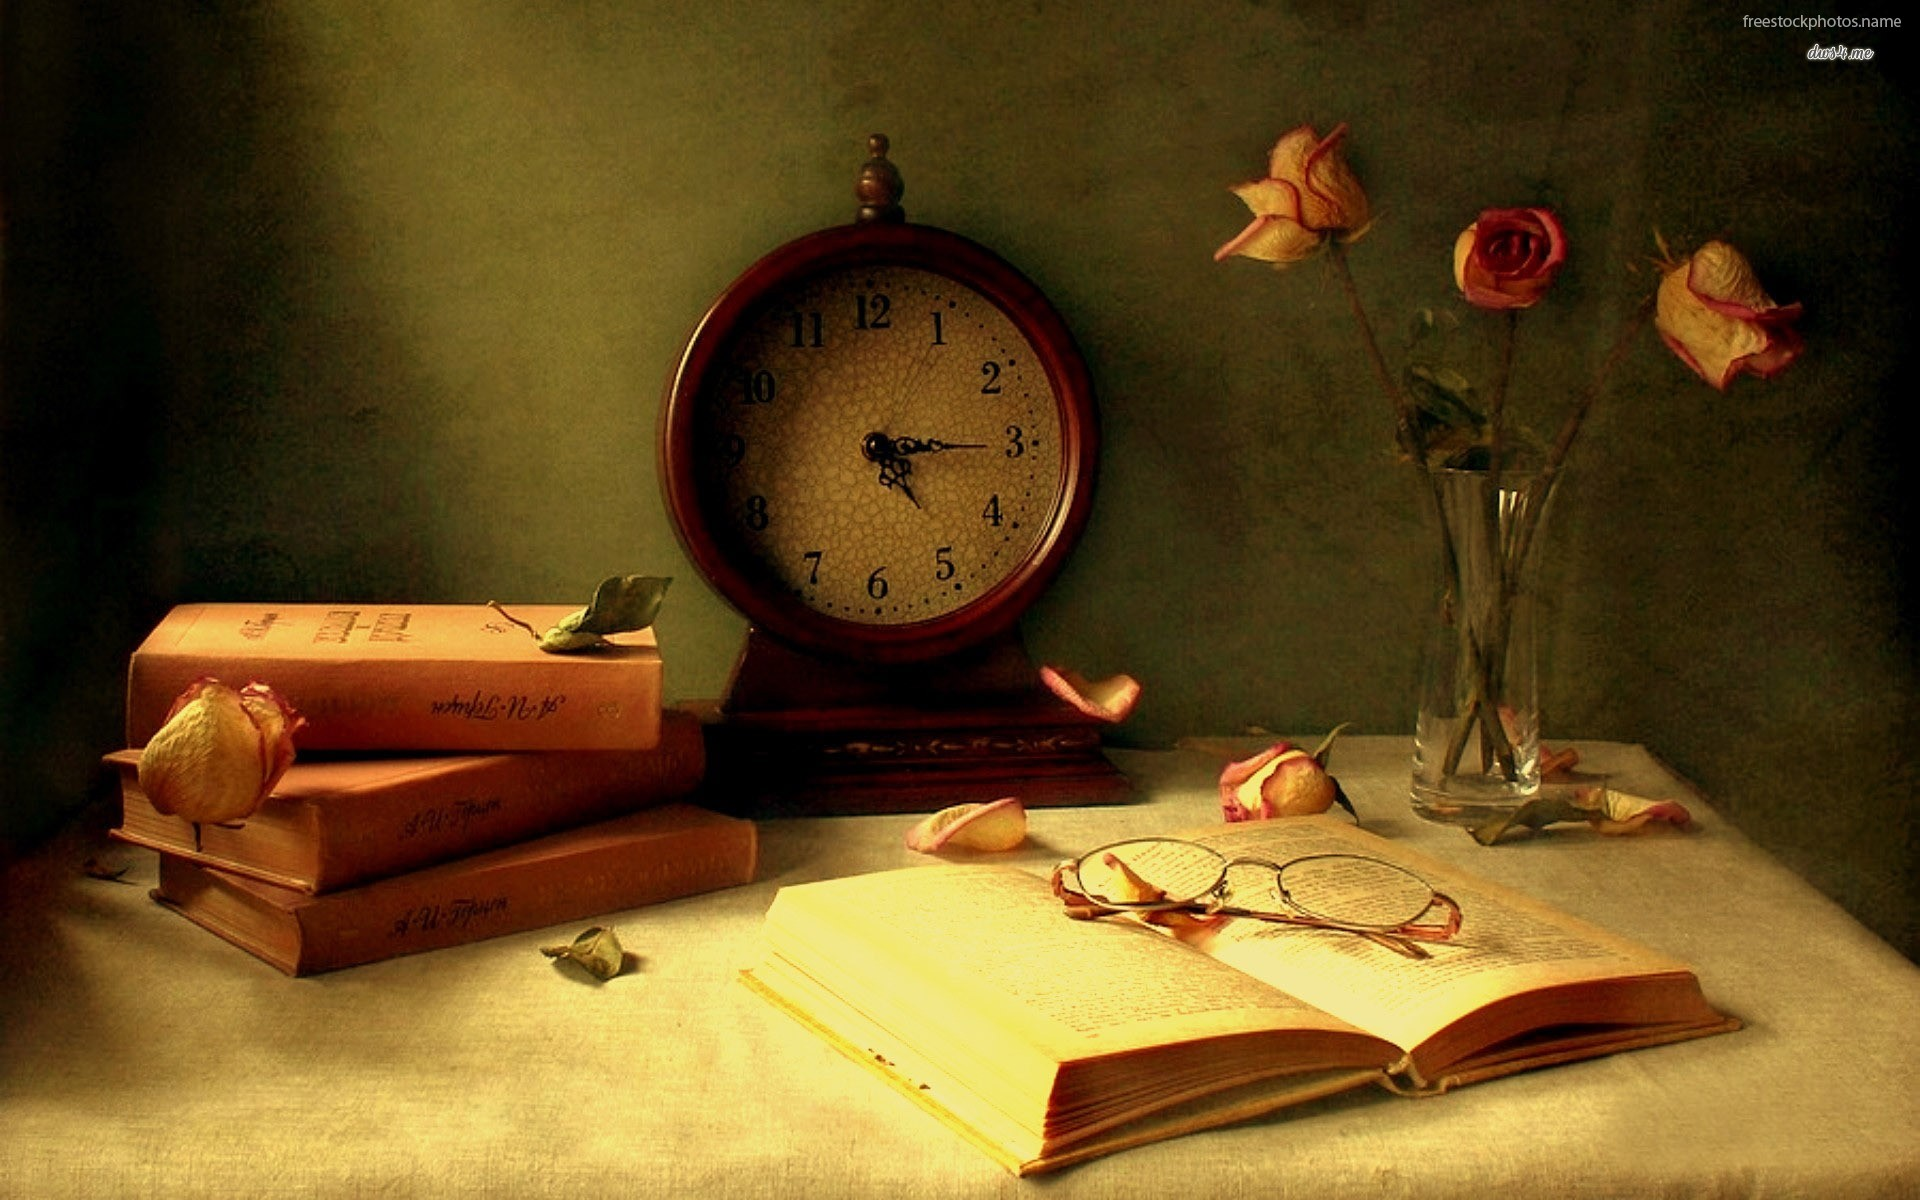 Download Books And A Old Watch On The Table   Data-src - Vintage Books Wallpaper Hd - HD Wallpaper